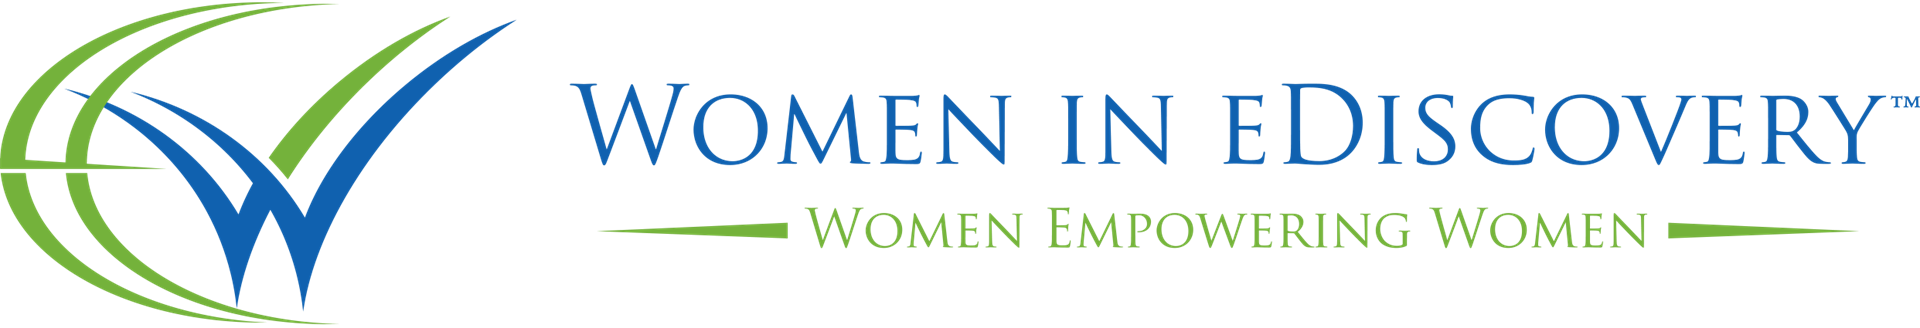 women in ediscovery - news